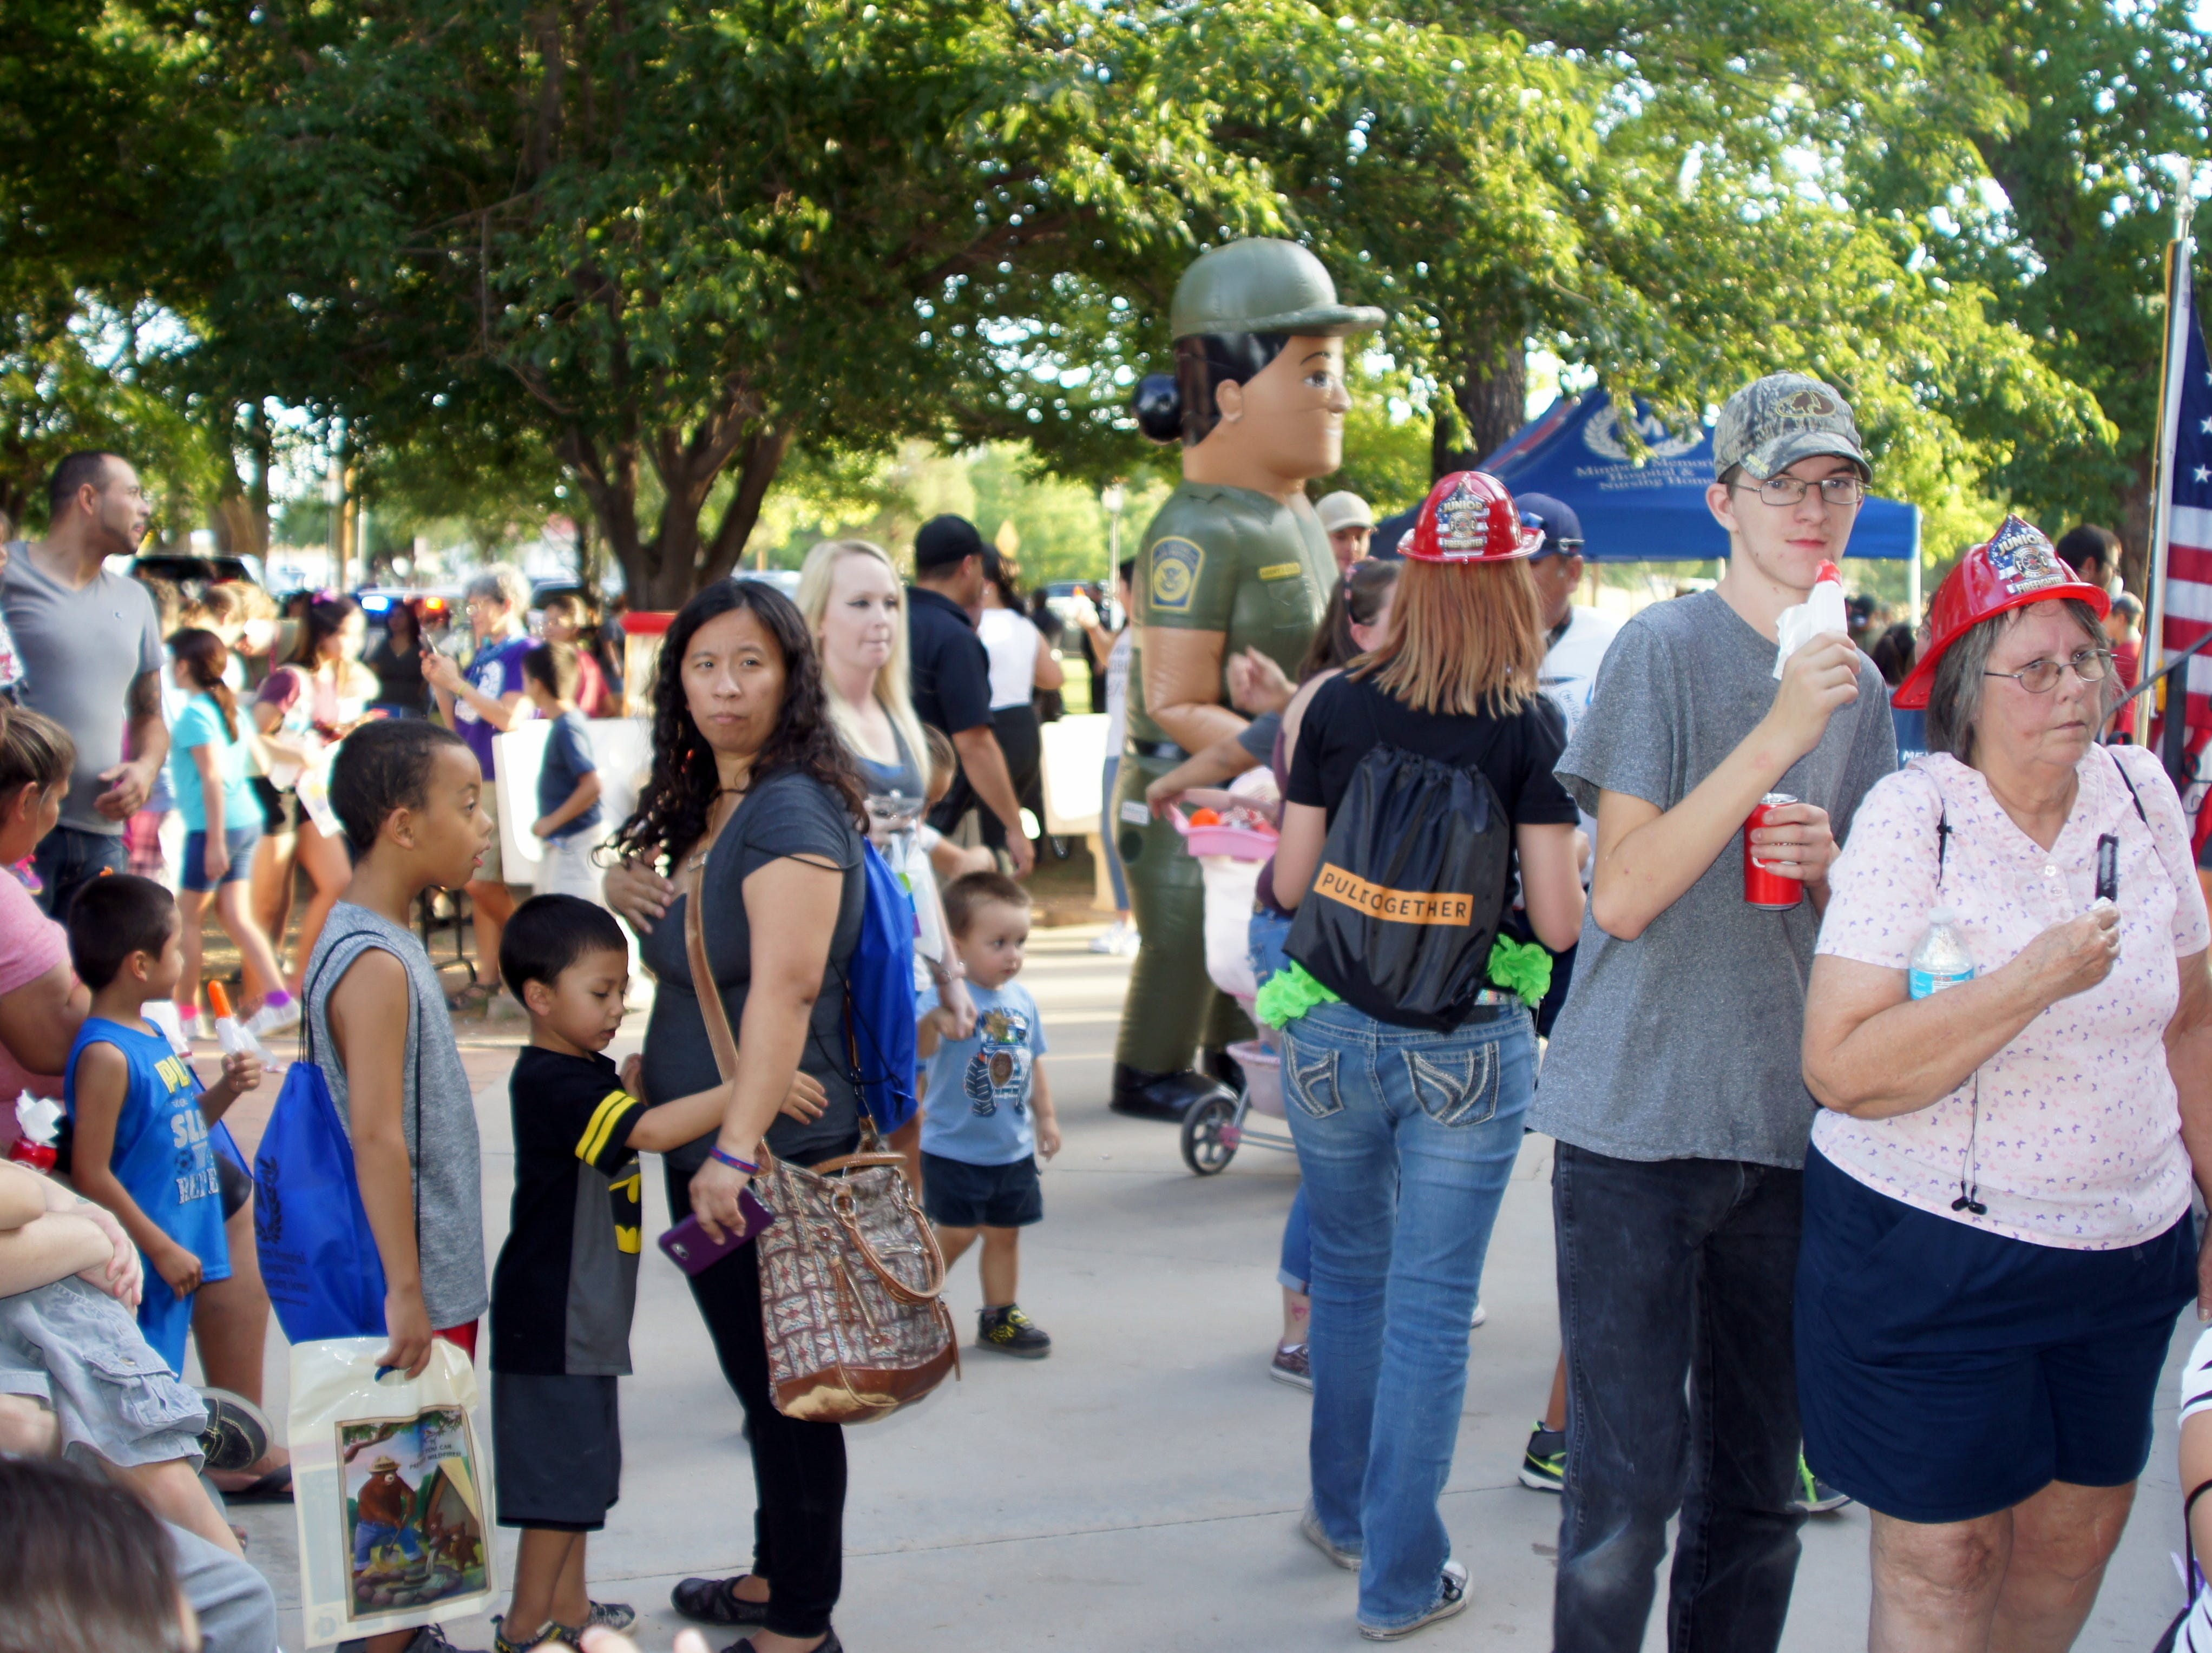 The crowd grew to well over 1,000 during Tuesday's second annual National Night Out at Luna County Courthouse Park in Deming, NM.